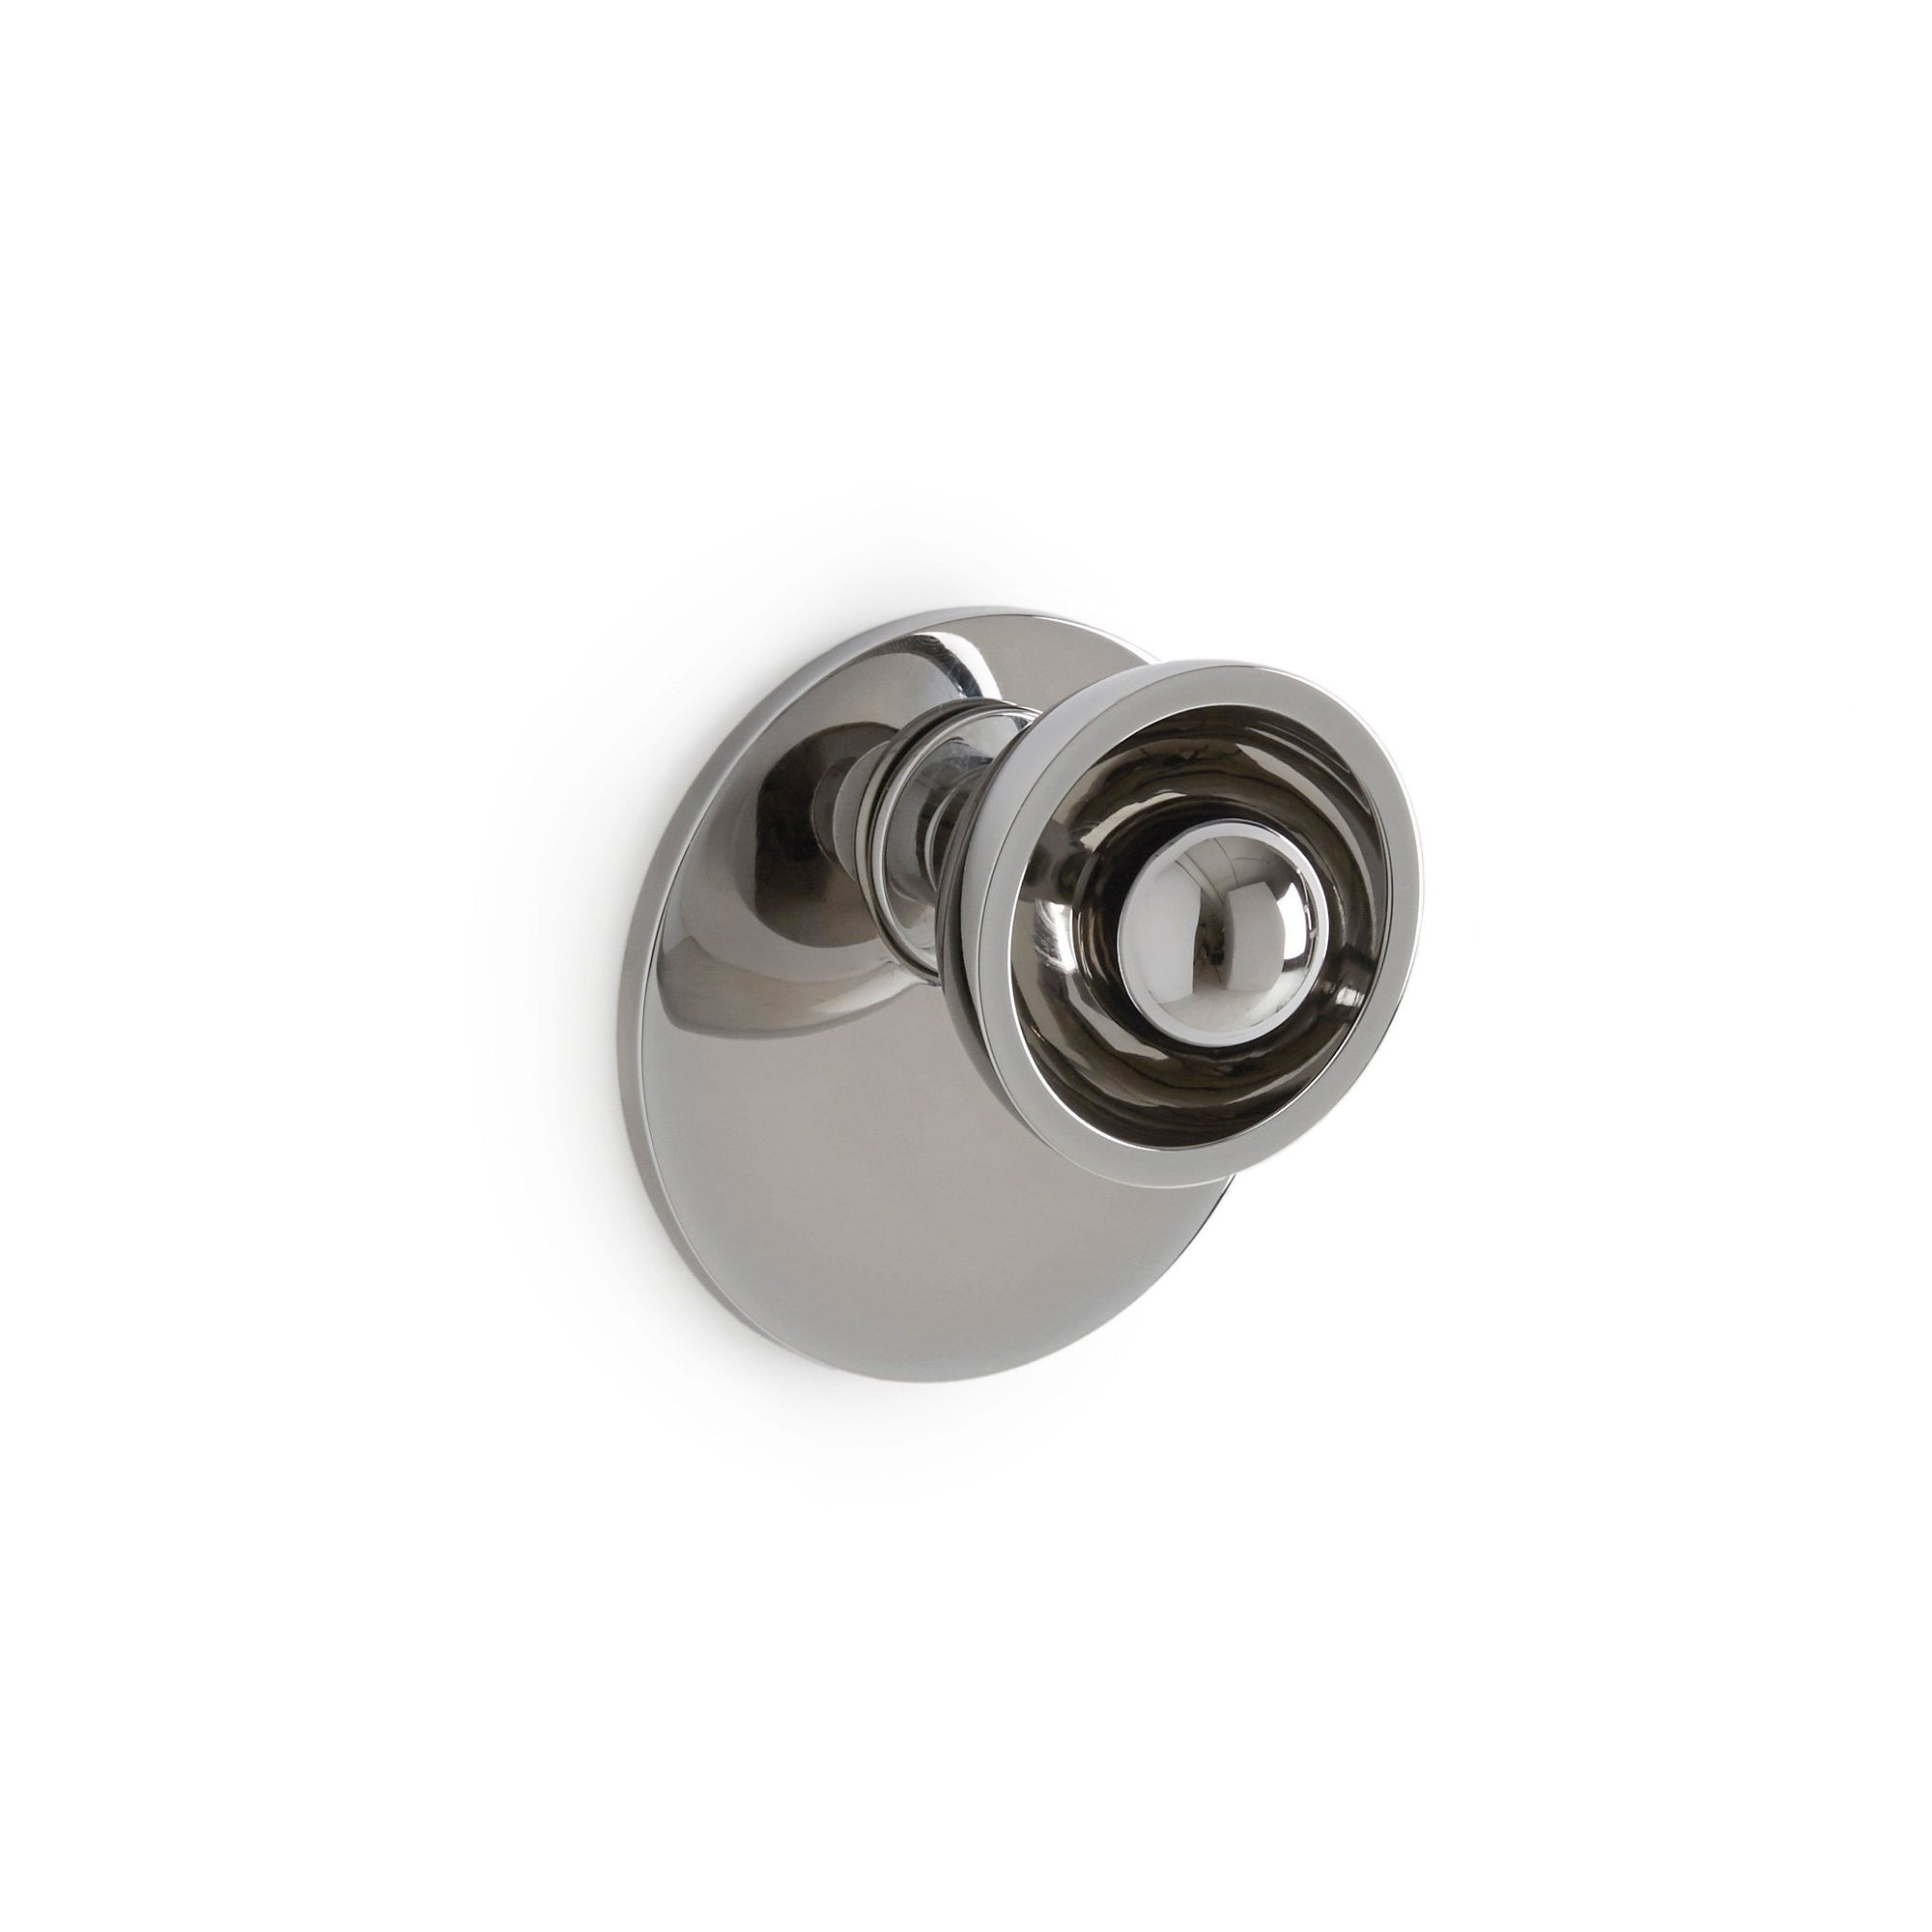 2006DOR-CP Sherle Wagner International Saturn Door Knob in Polished Chrome metal finish